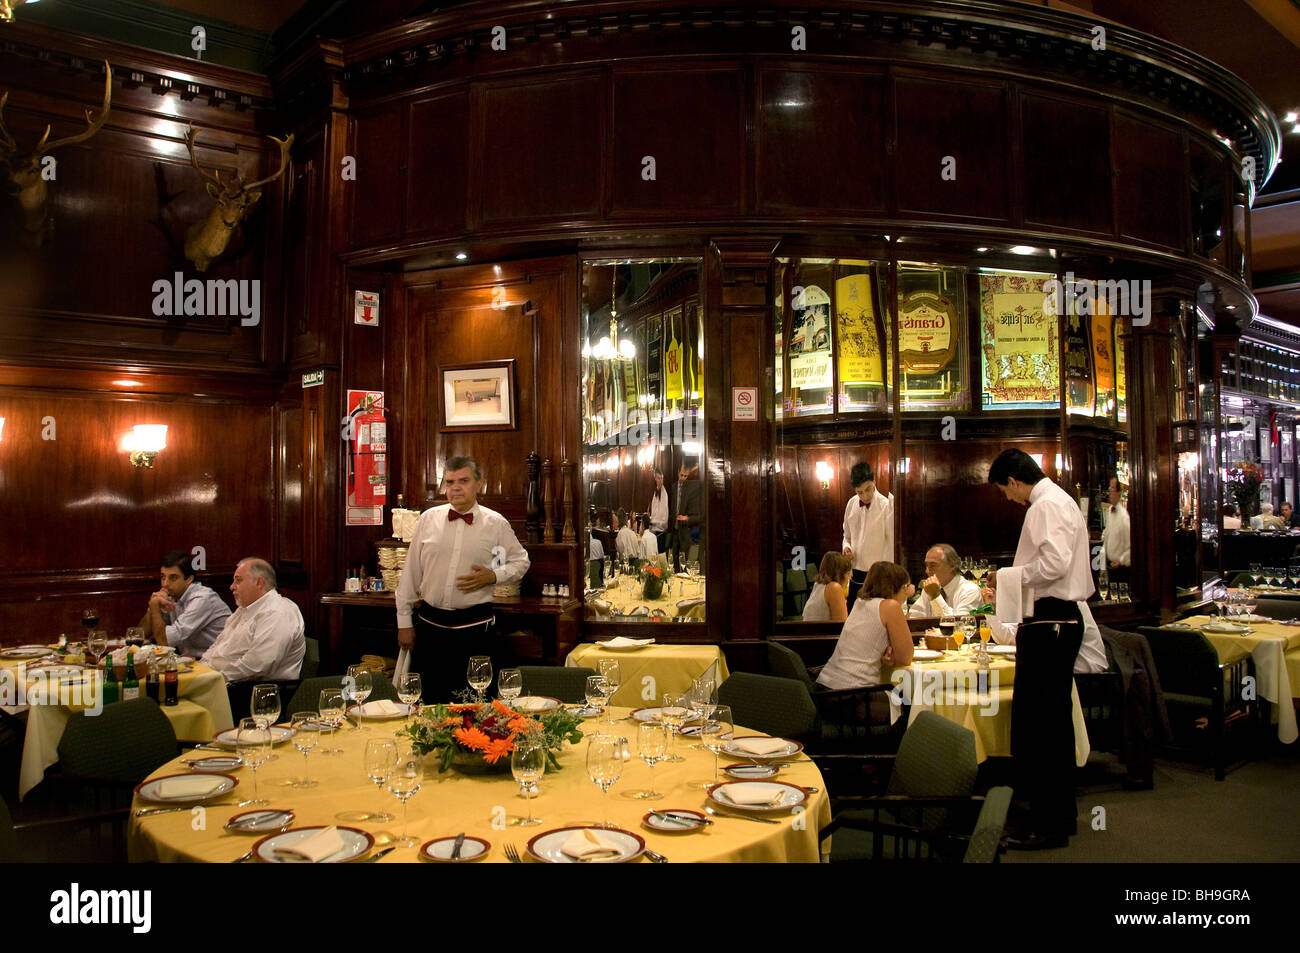 The Brighton Restaurant Buenos Aires Bar Cafe Pub  Argentina Town City - Stock Image